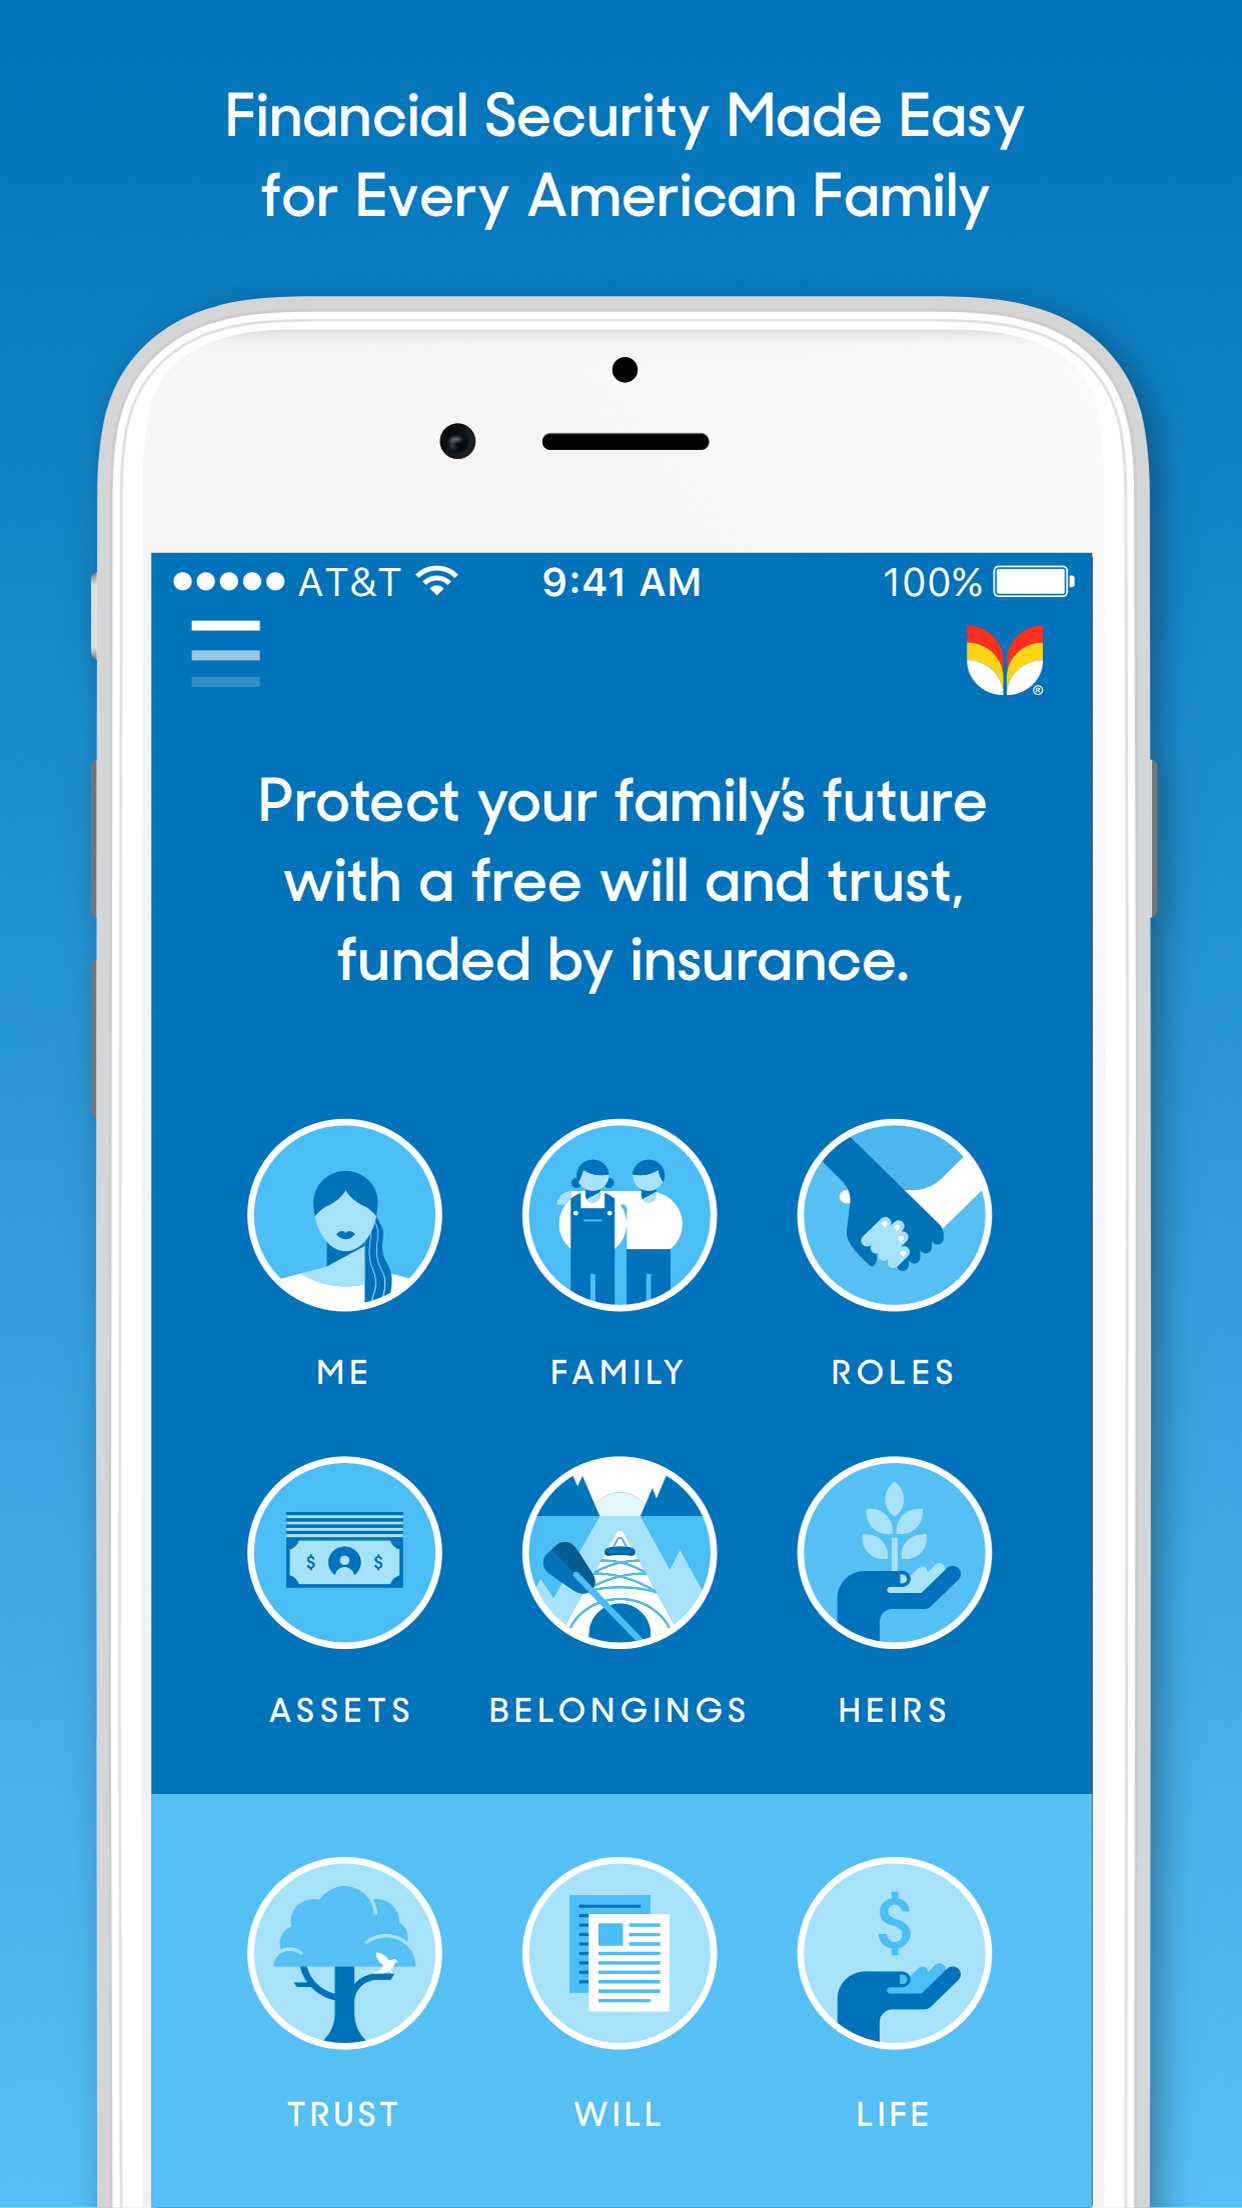 "About the Tomorrow App   - The Tomorrow app is the ""first trust fund for everyone,"" right in their pockets. It lets people create a FREE will and FREE trust (also known as a revocable living trust or trust fund) – in minutes, not months.Users can also purchase the optimal amount of affordable term life insurance within the app, or use an existing policy, and allocate future payouts to fund their trust.The uniquely social experience also makes it easy for users to invite family and friends to serve important future roles, encouraging transparent dialog about hopes and expectations. Tomorrow guides users through these decisions and makes them easy to change anytime, with a click of their phones. It combines many of the tools used by the wealthy and makes them accessible and affordable for everyday Americans."